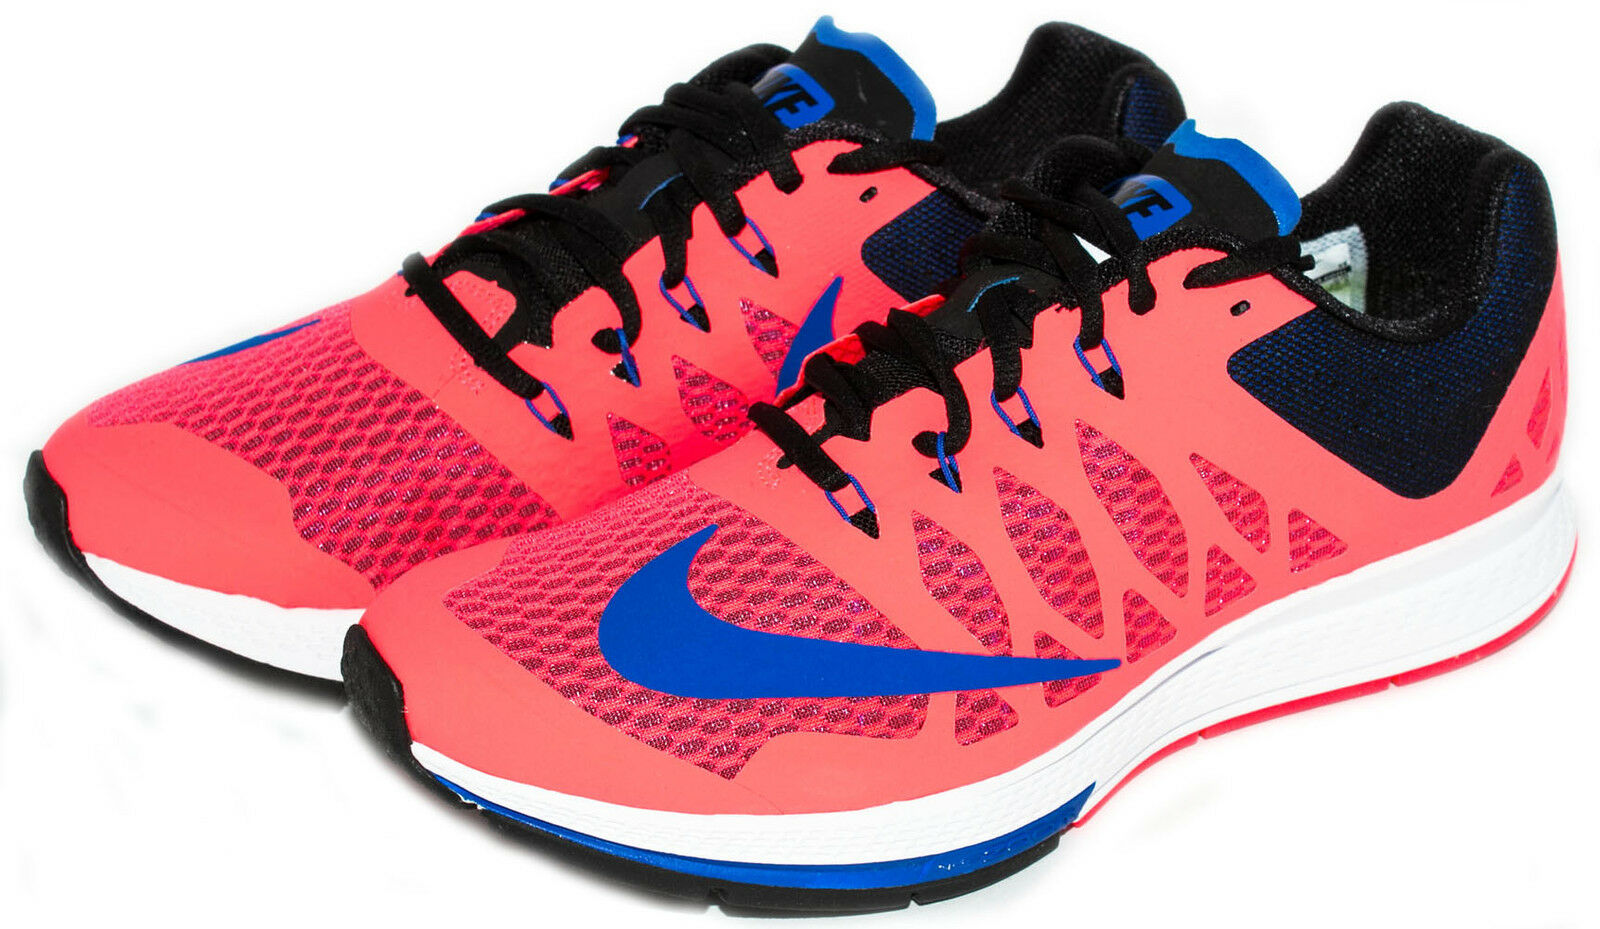 Nike Air Zoom Elite 7 Men's Running shoes Hyper Punch Cobalt 654443-600 sz. 8-11